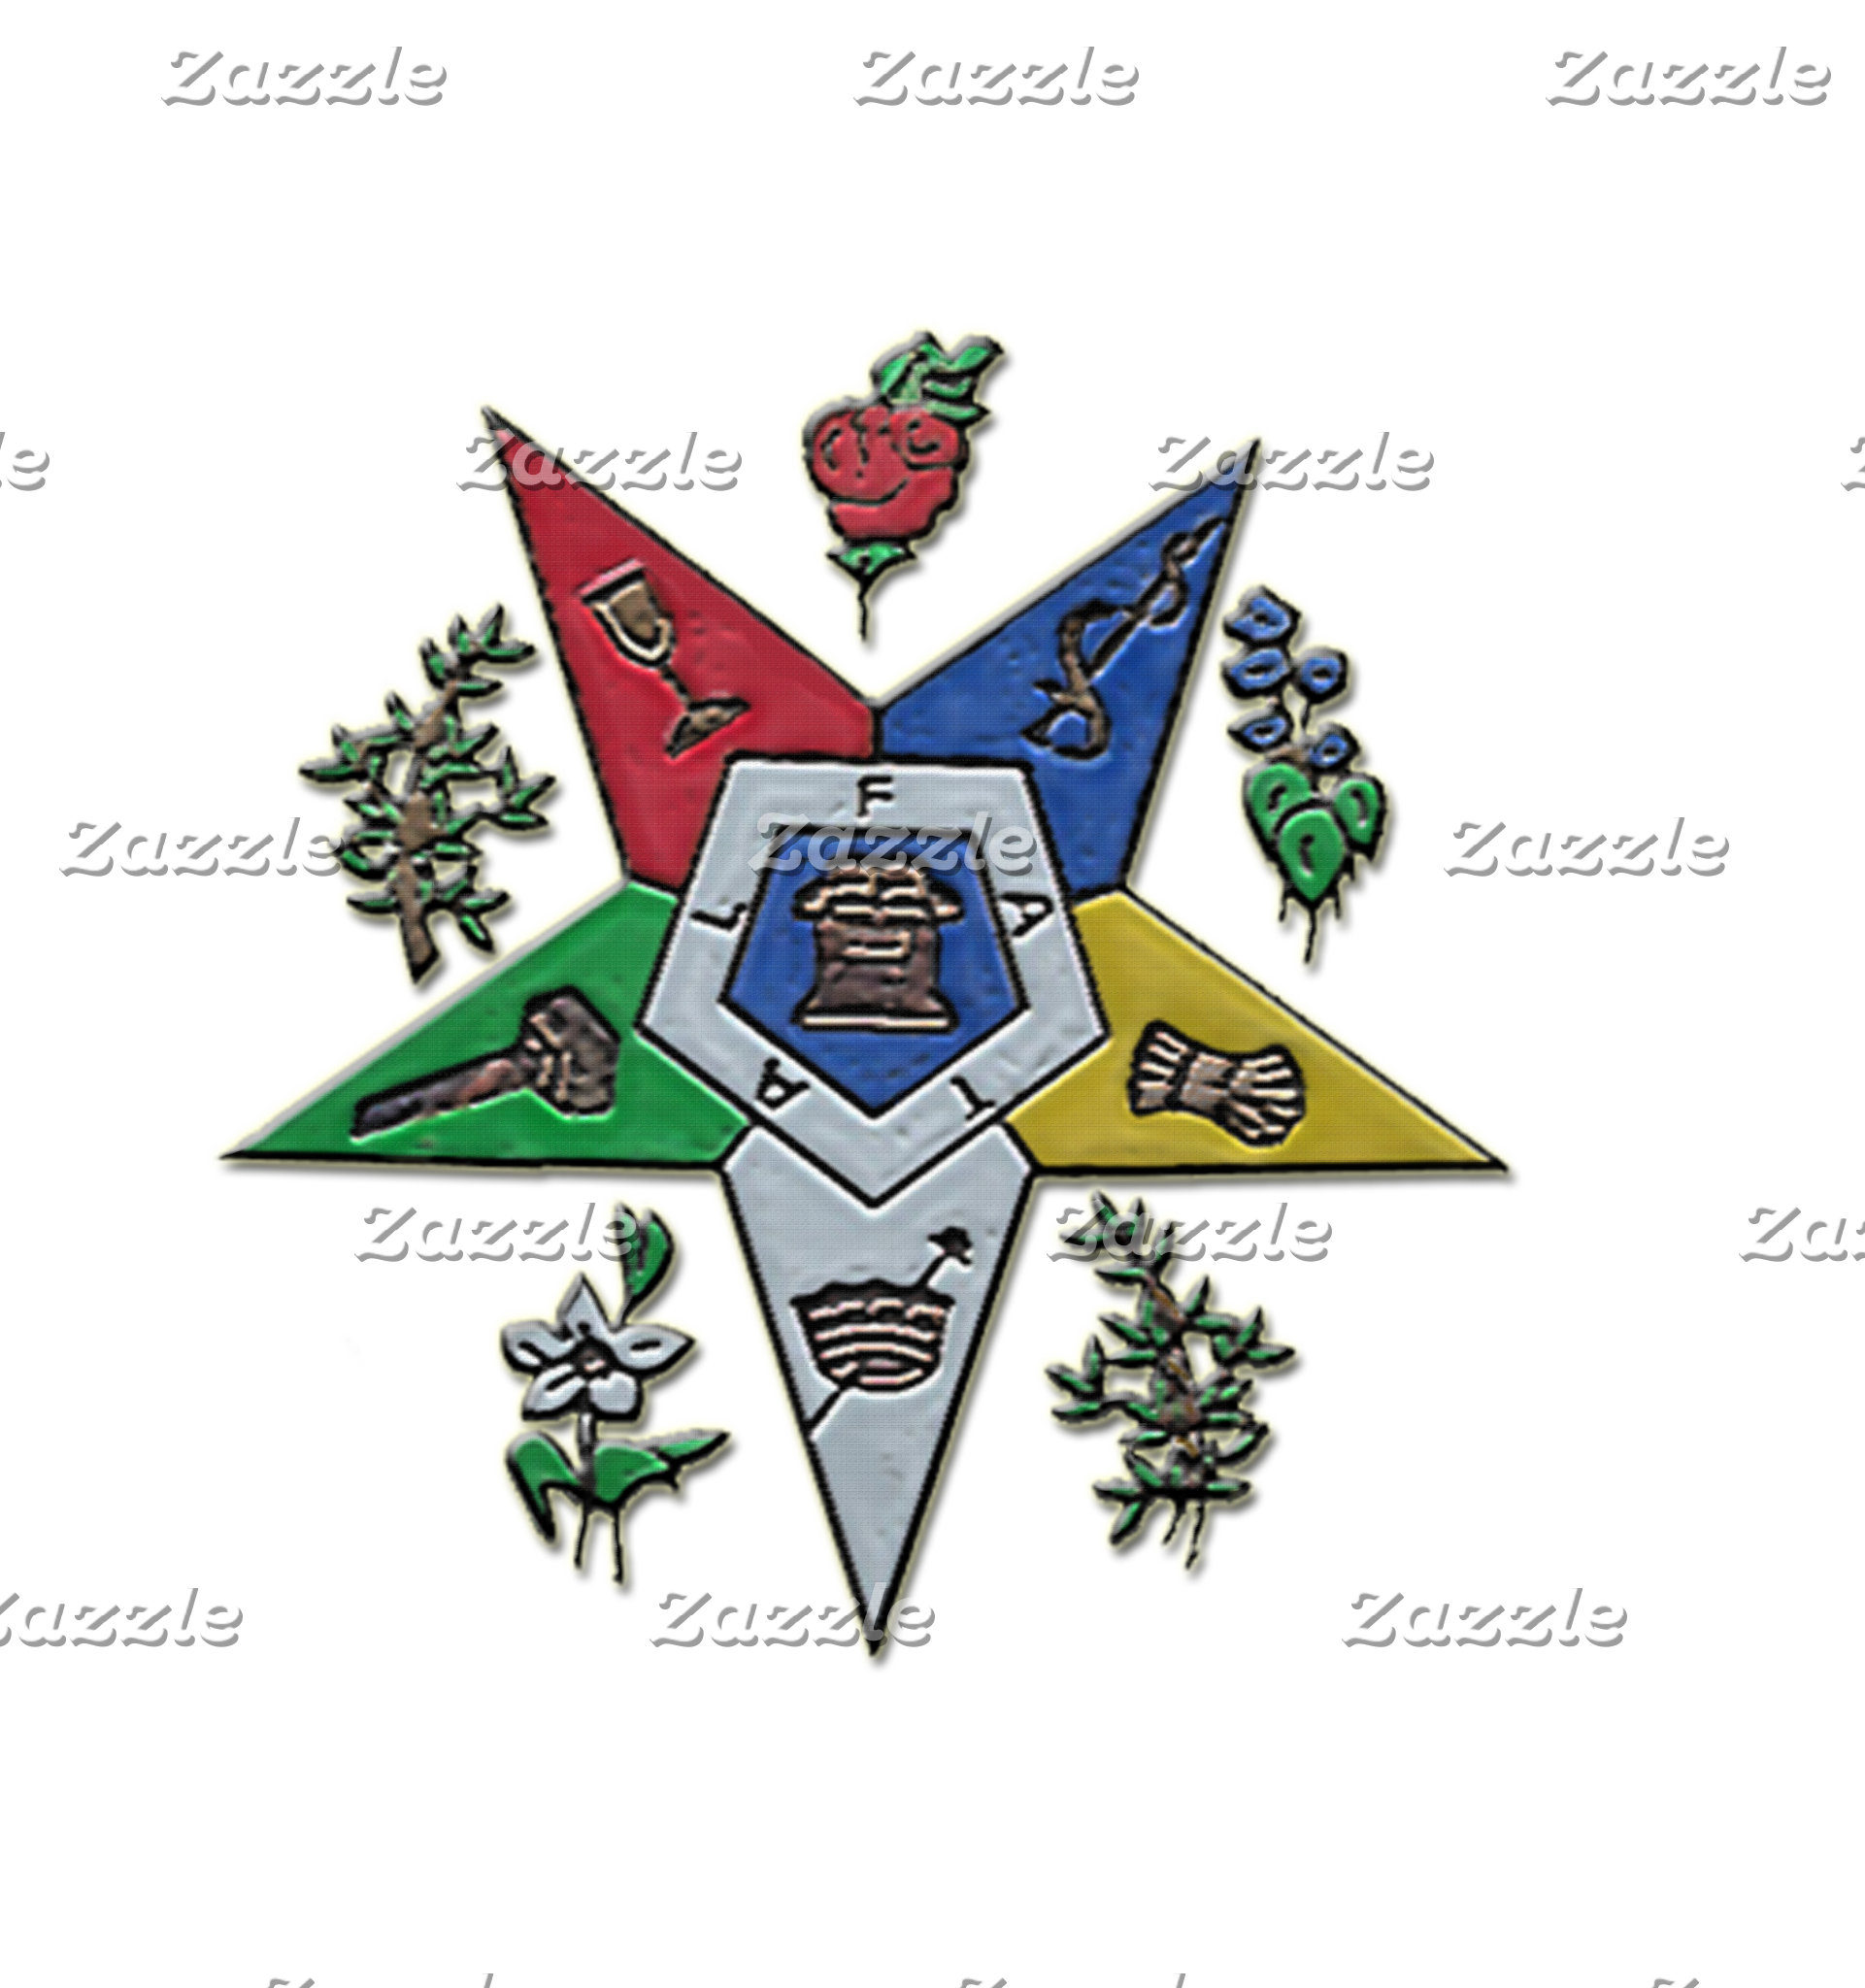 OES! New Designs coming SOON!